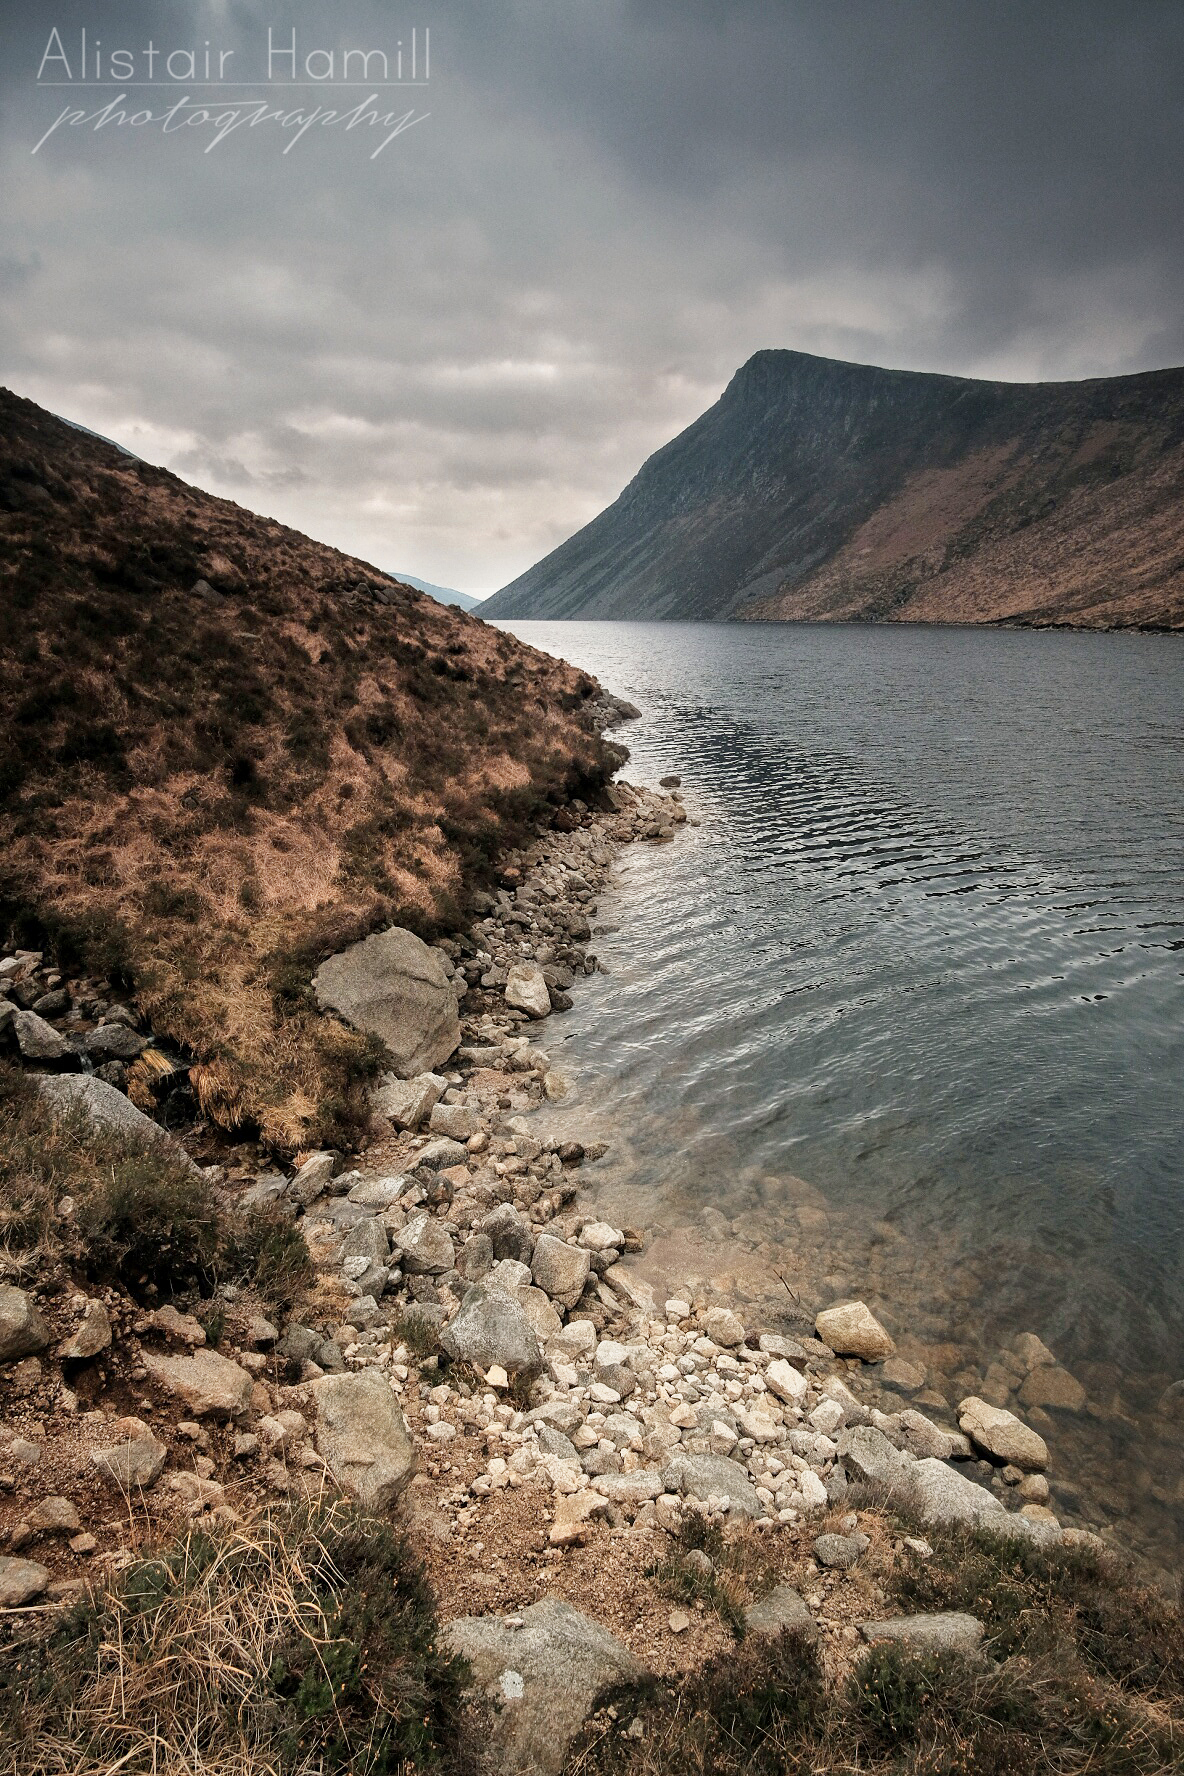 From the shores of Ben Crom Reservoir, looking towards Ben Crom mountain